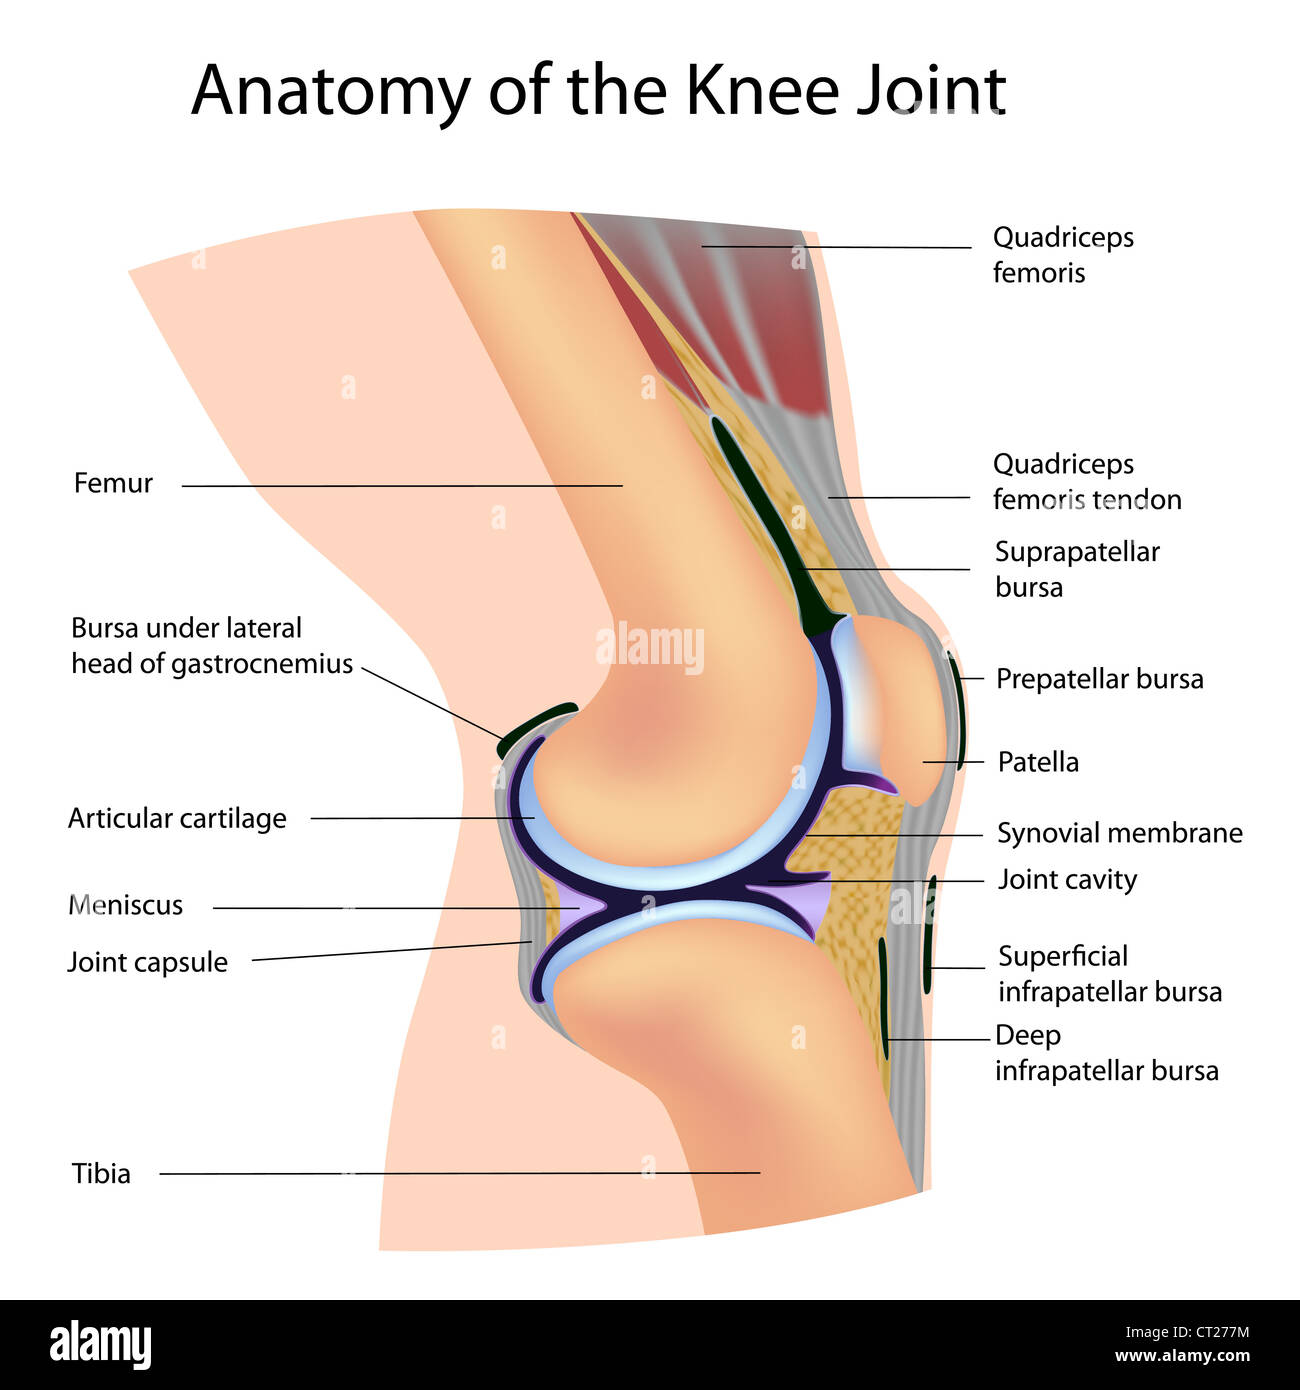 Anatomy of the Knee Joint, labeled Stock Photo: 49222088 - Alamy